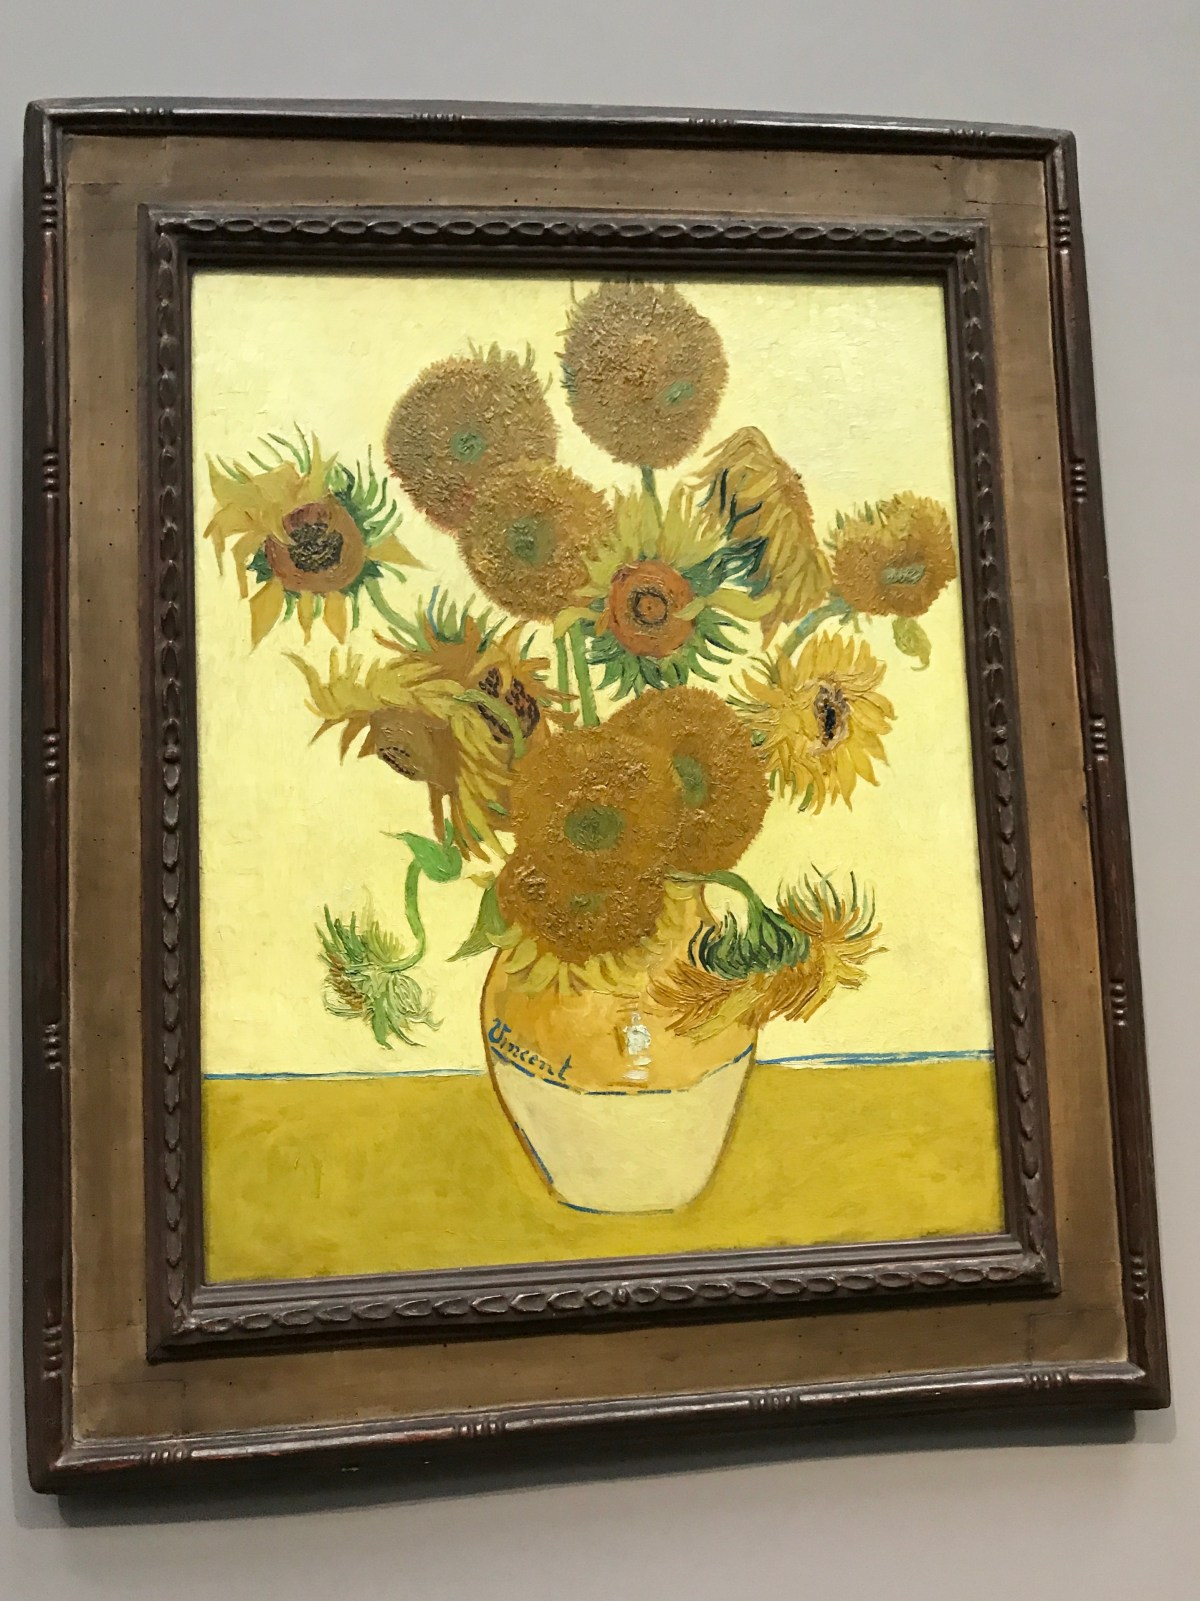 National gallery, the Sunflower, Van Gogh, art